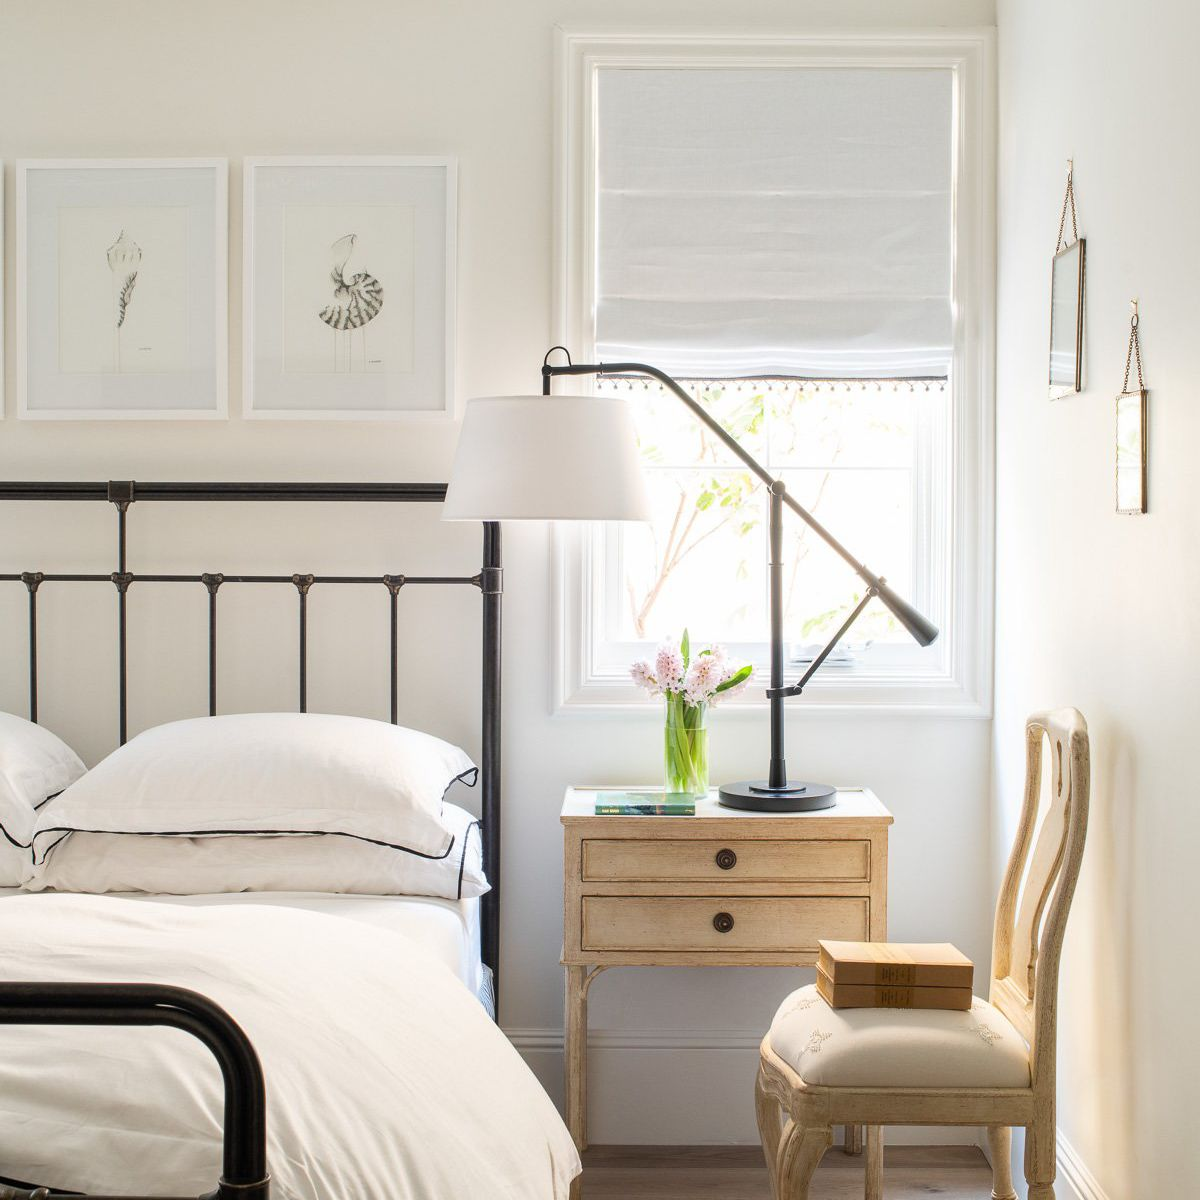 A light-filled bedroom with off-white walls